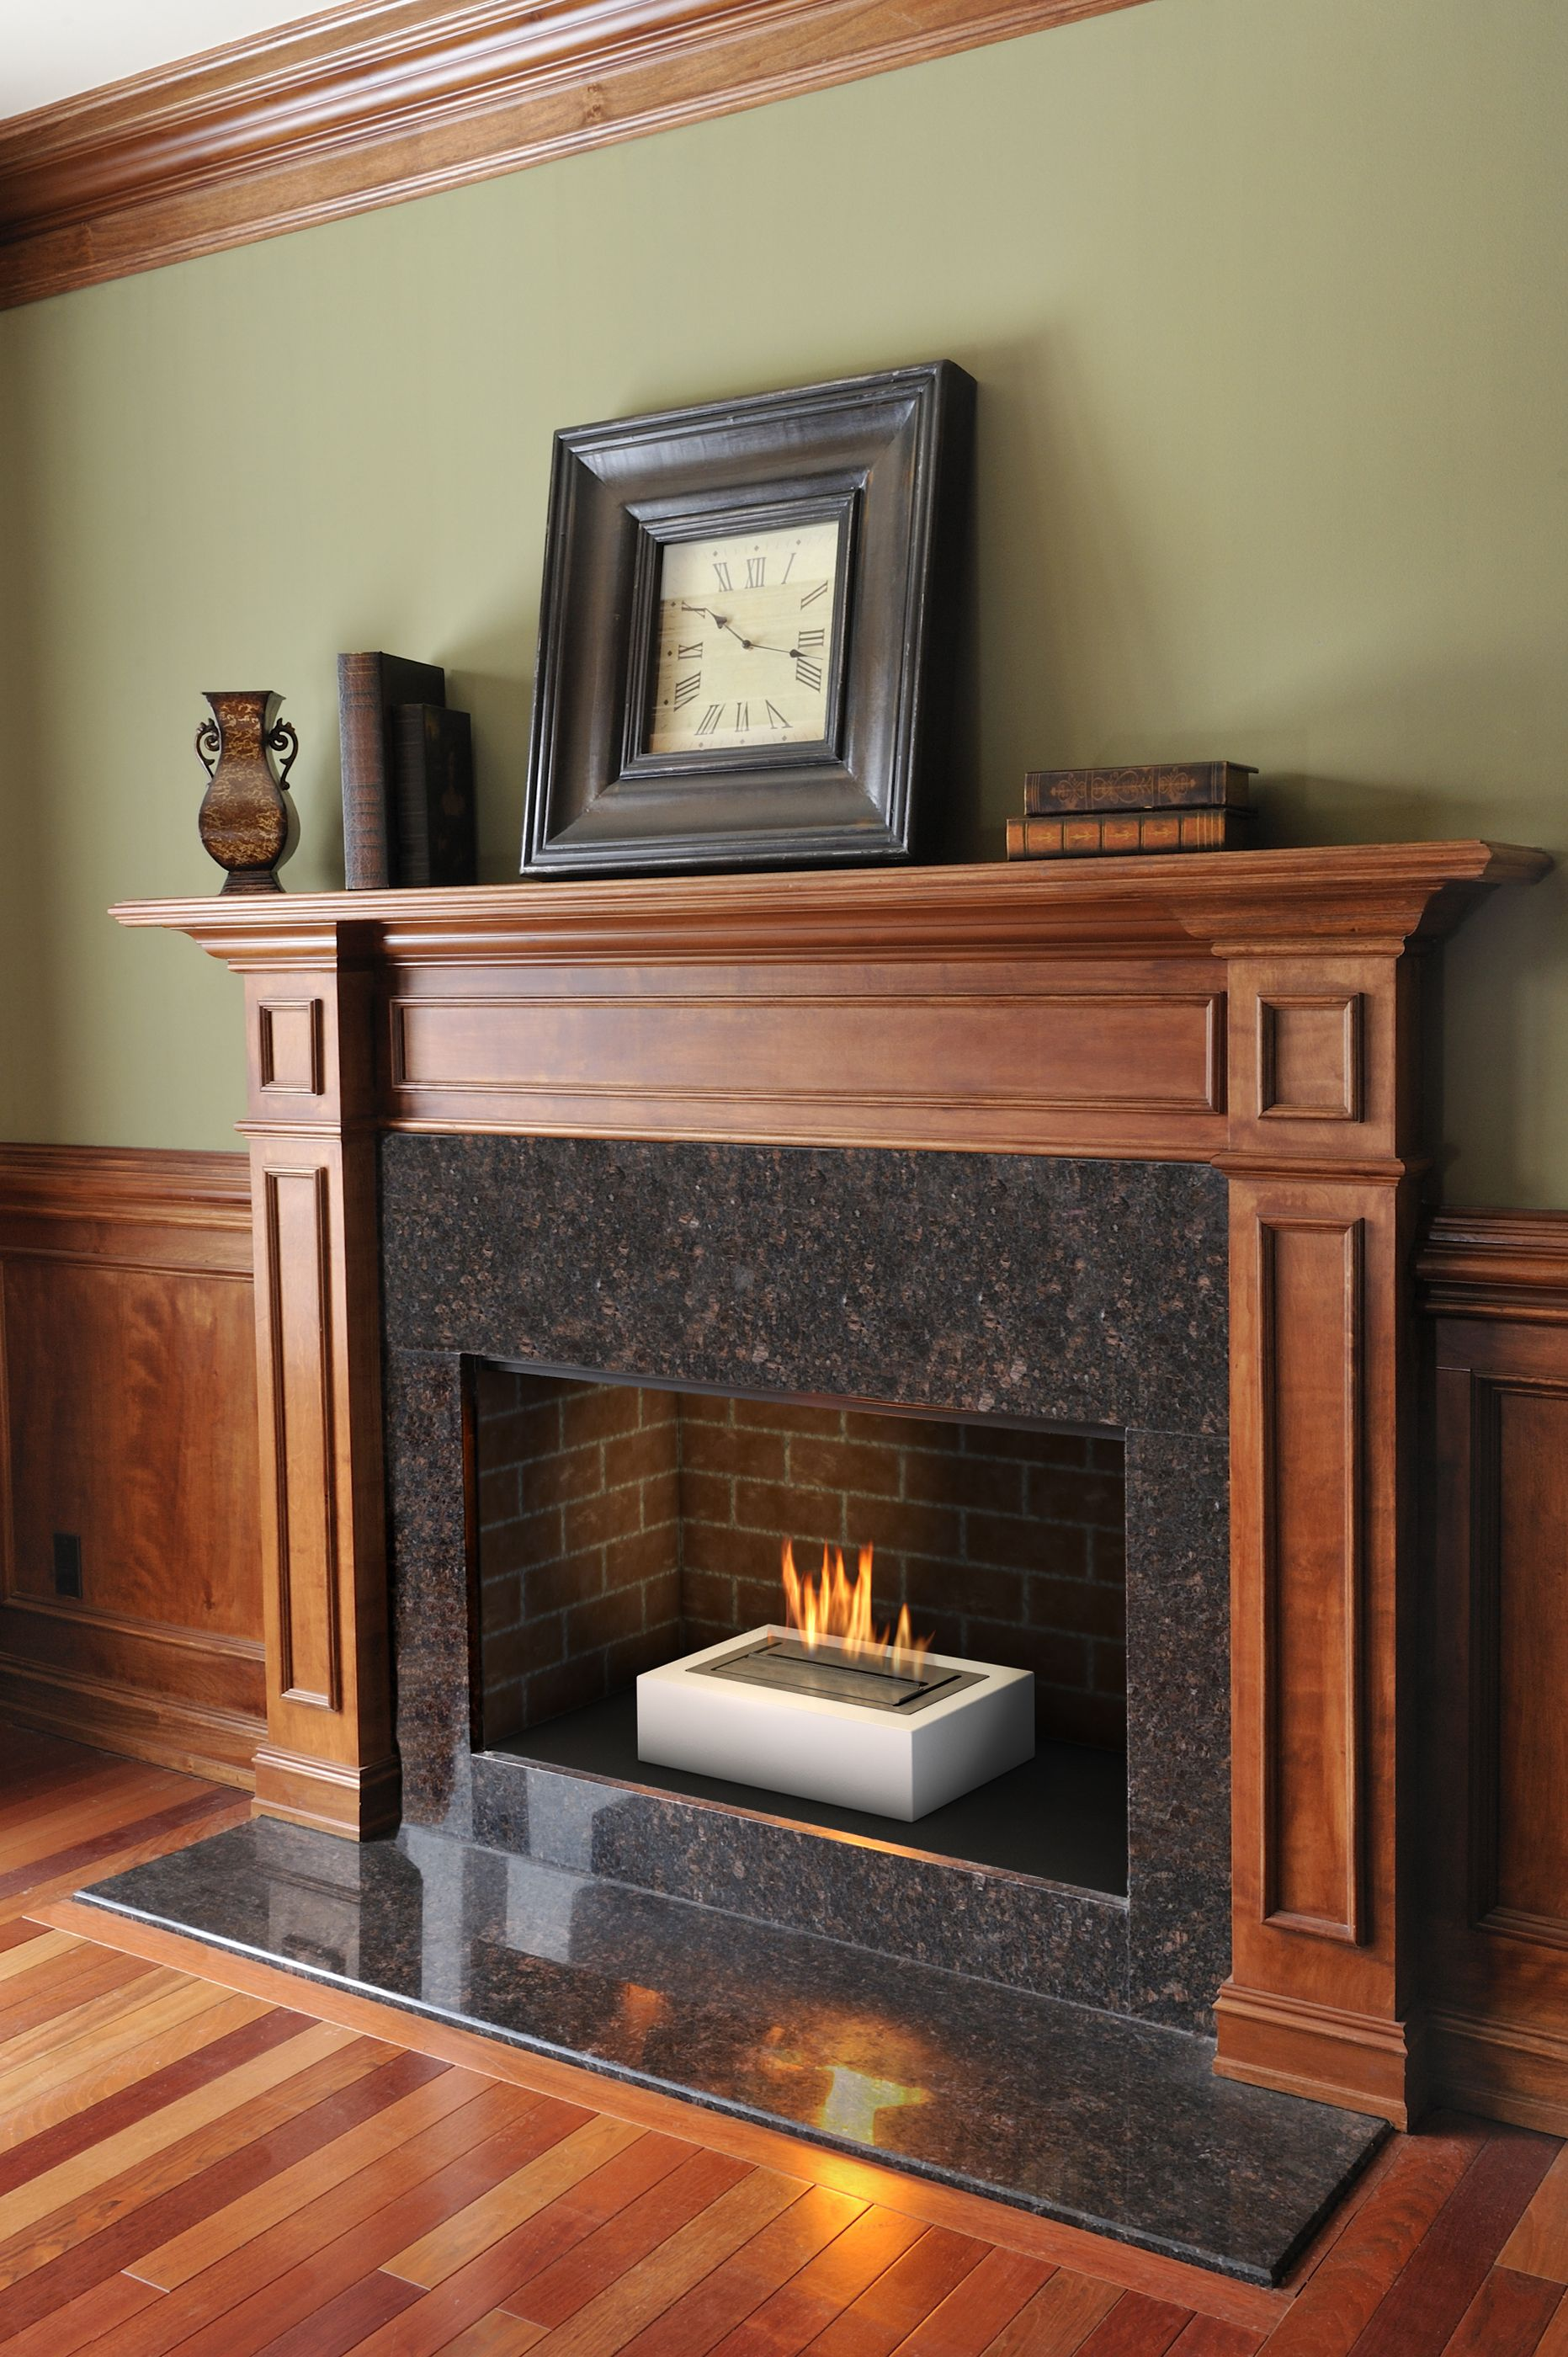 Pin By Trine On Fireplaces Pinterest